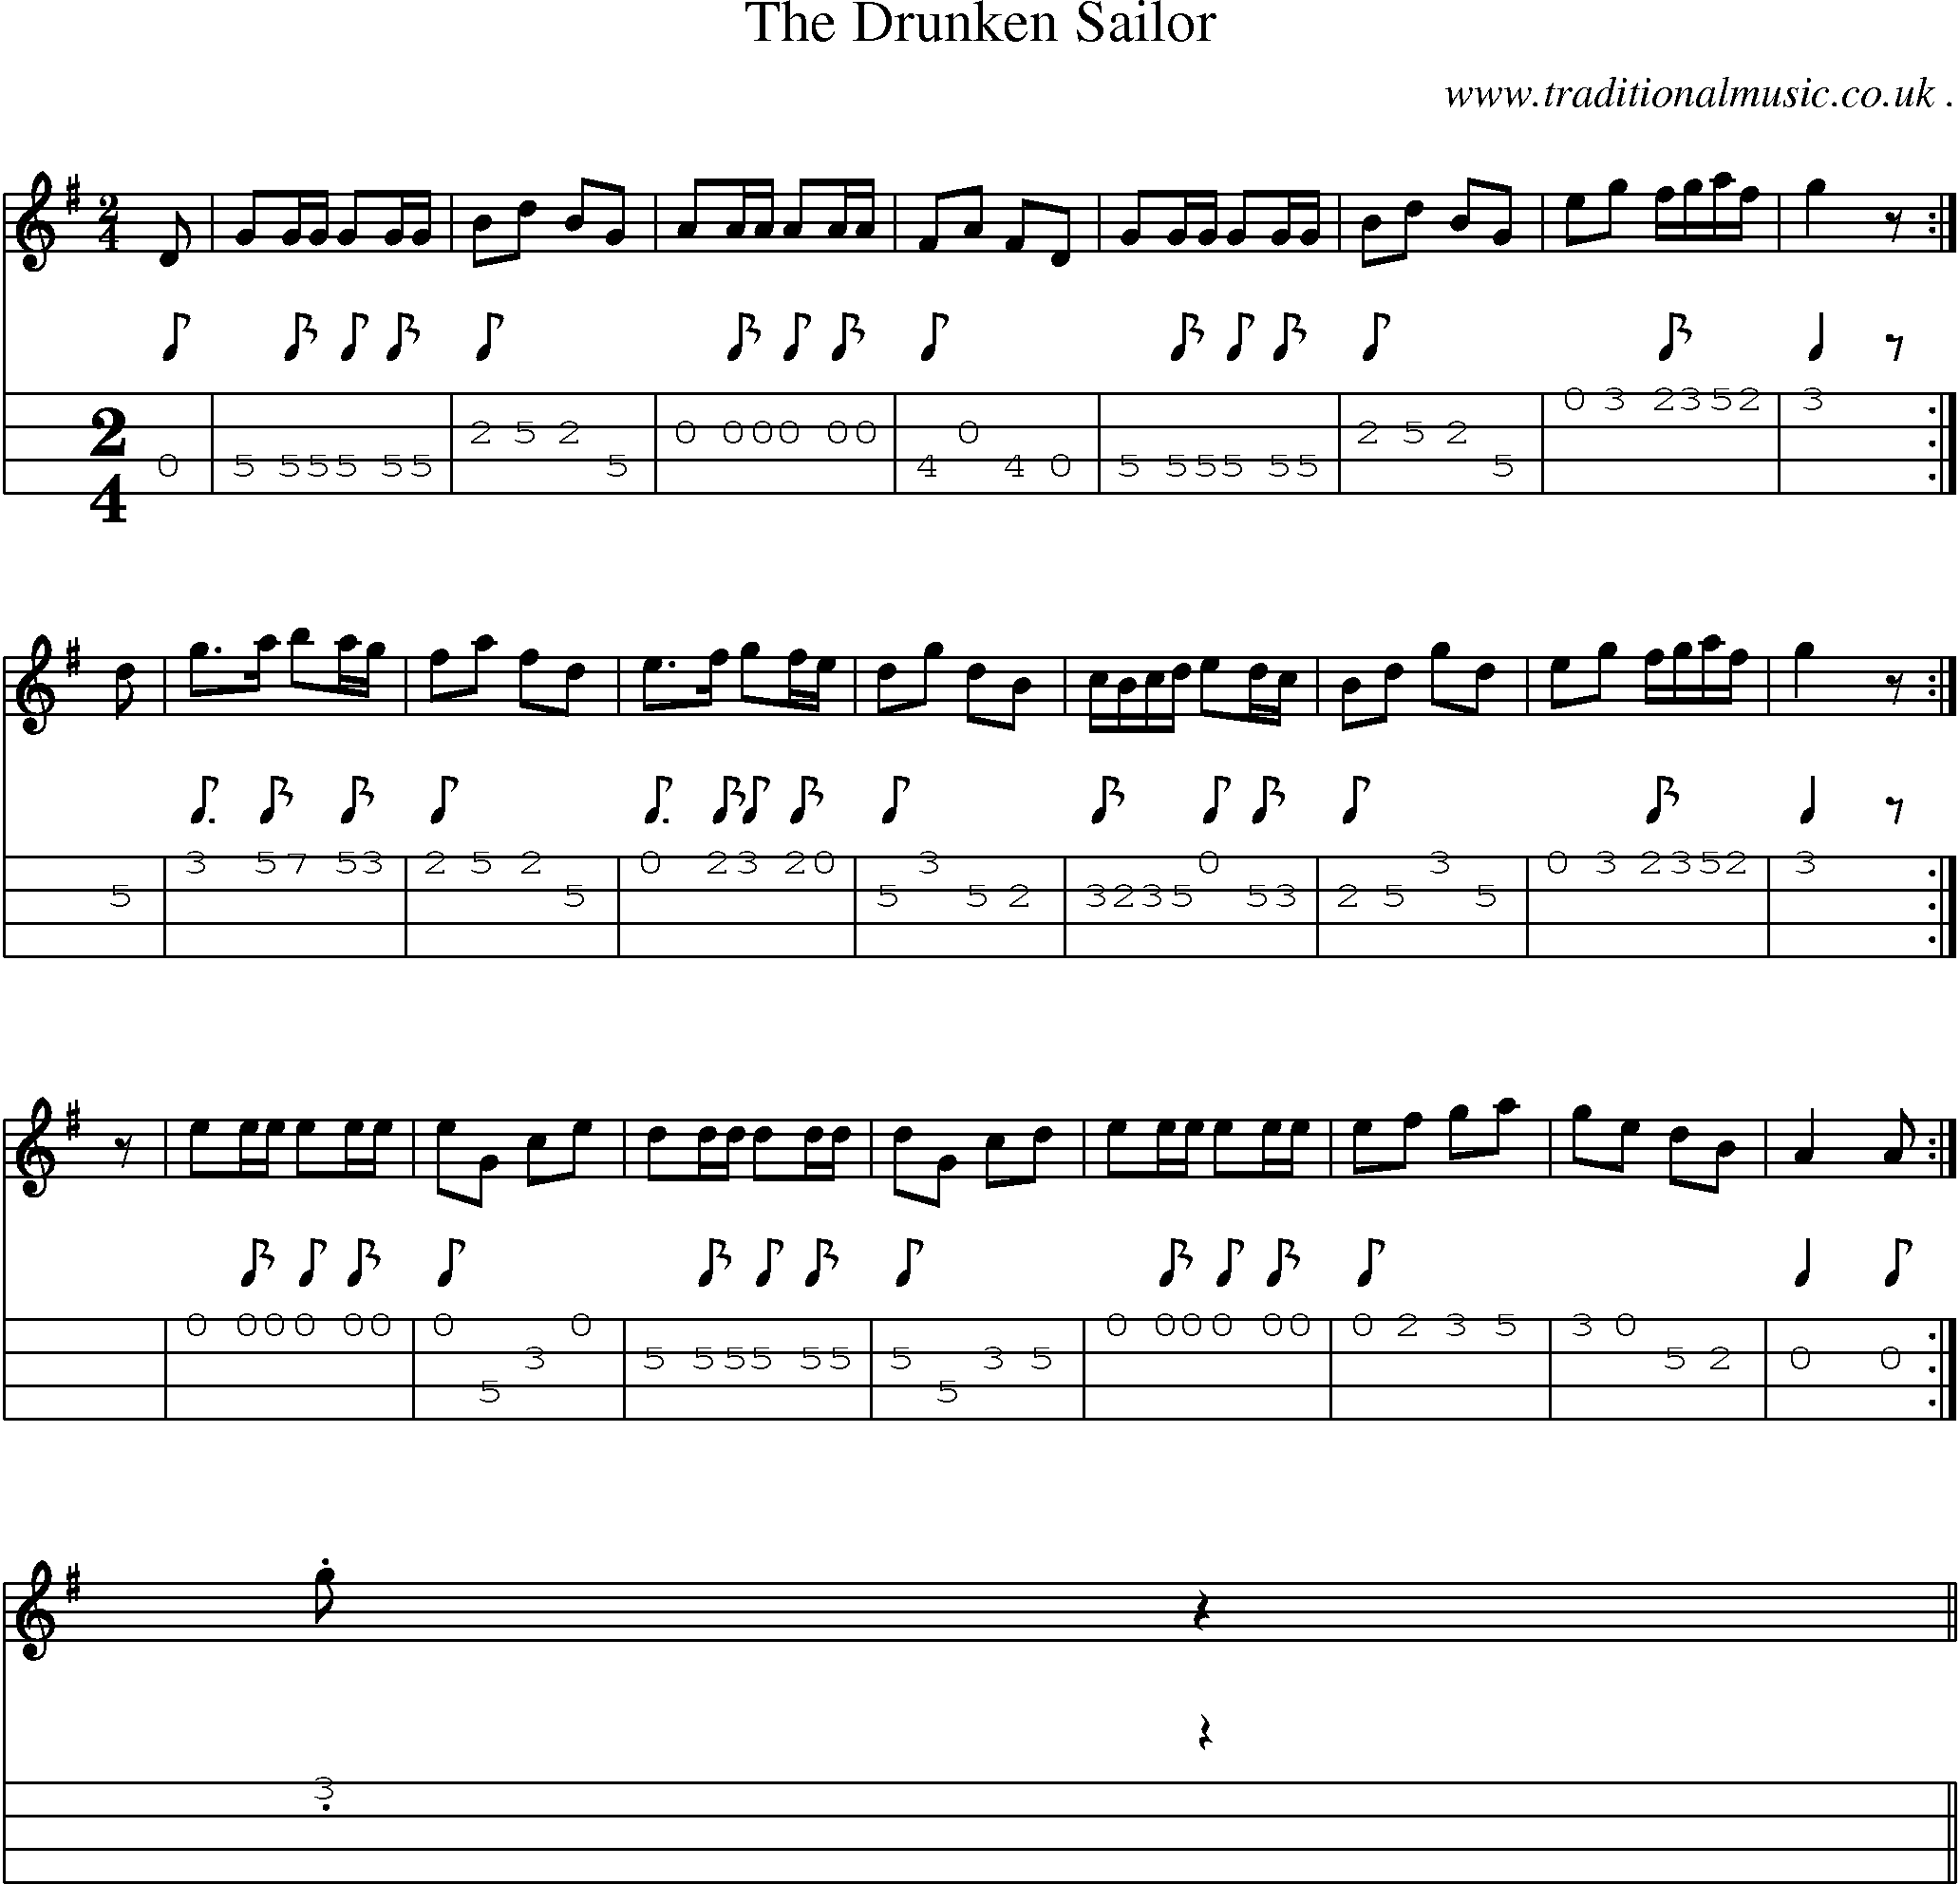 American Old-time music, Scores and Tabs for Mandolin - The Drunken Sailor